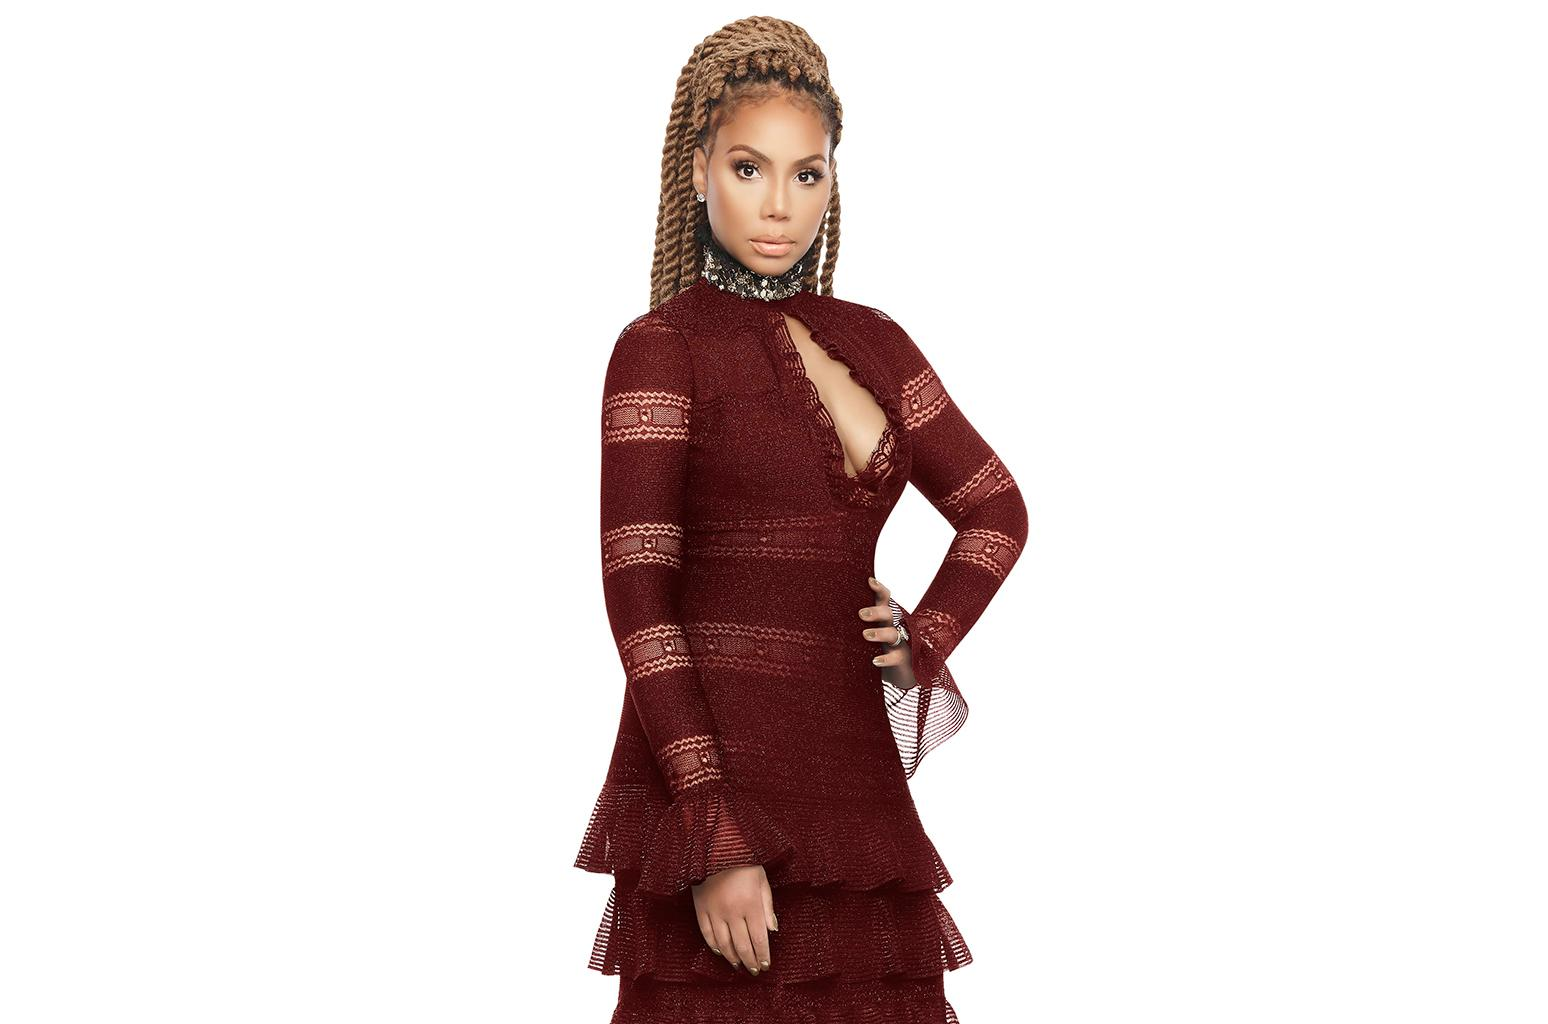 Tamar Braxton Is Back With Another Fire Clip And Fans Go Crazy With Excitement